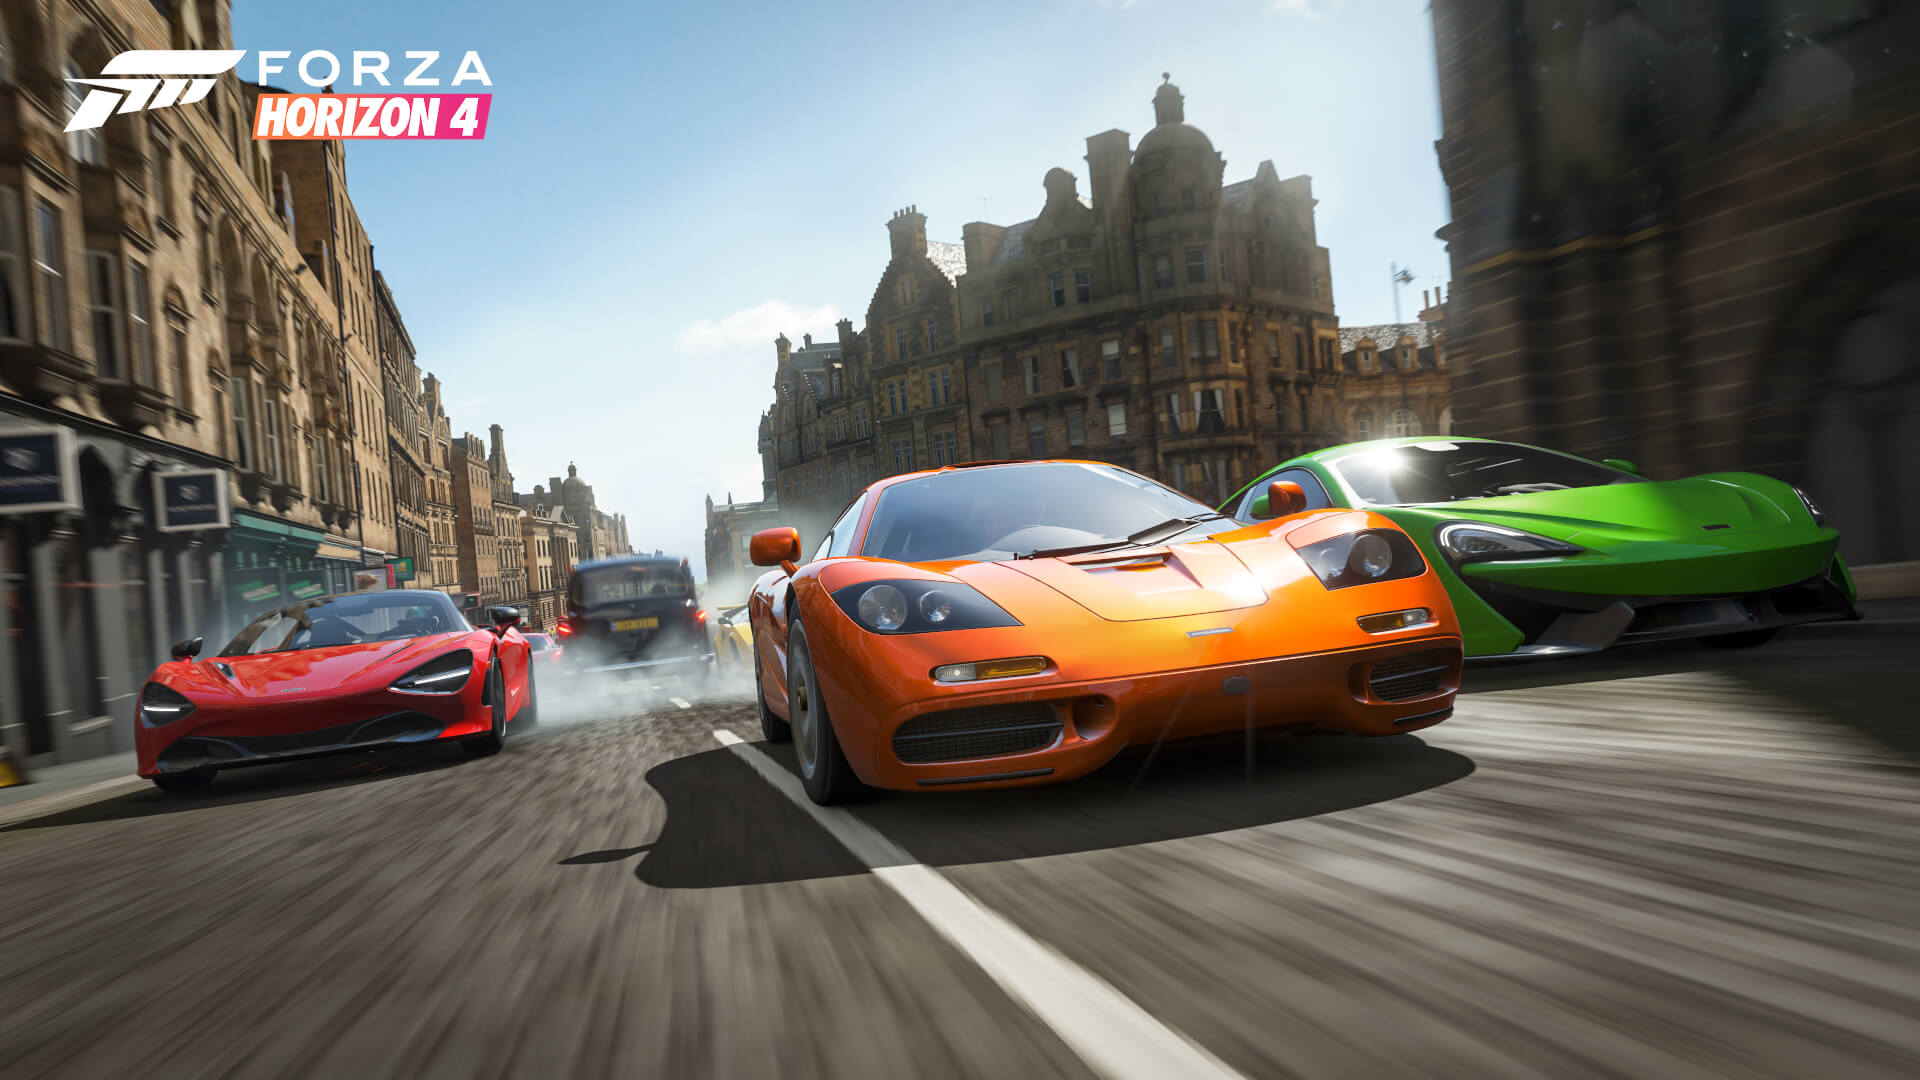 Discover Shared Open-World Gameplay in Forza Horizon 4